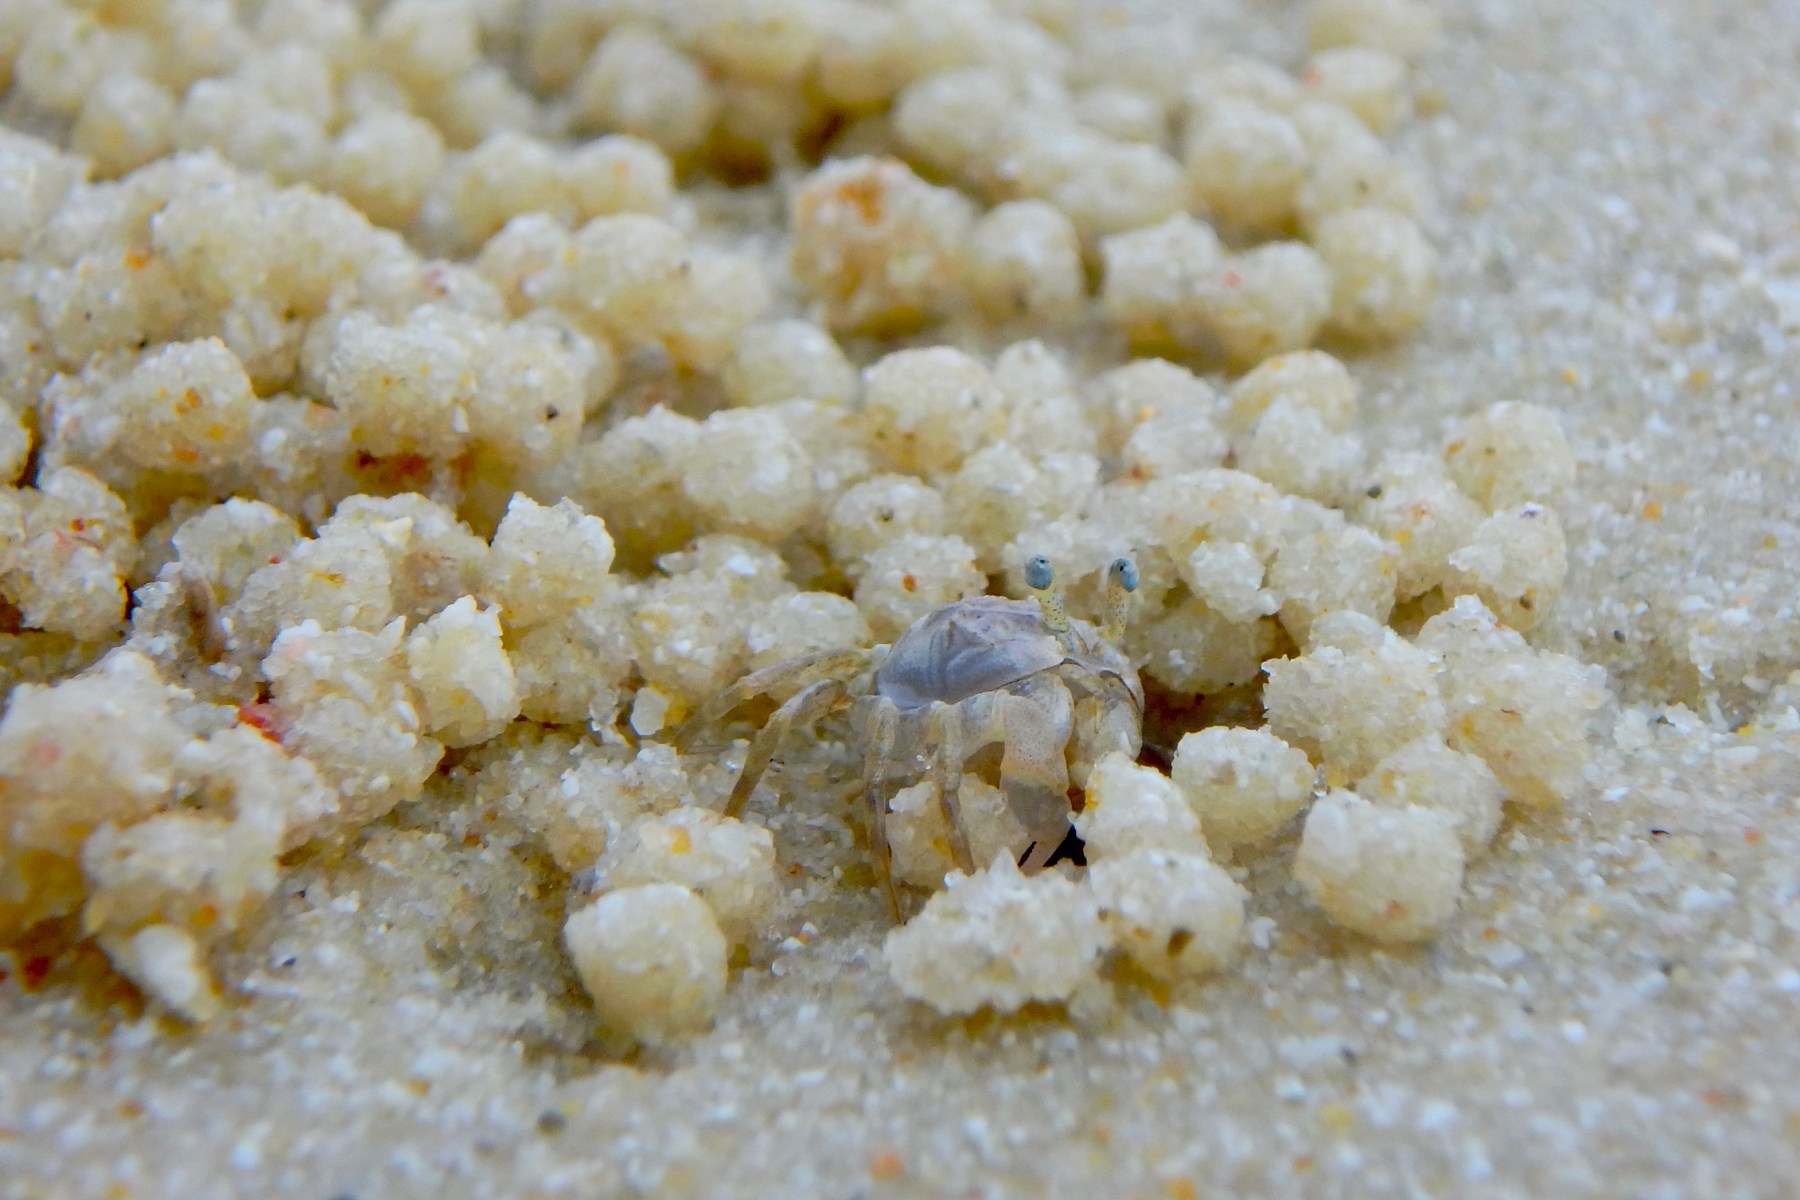 Sand Crabs at the Beach